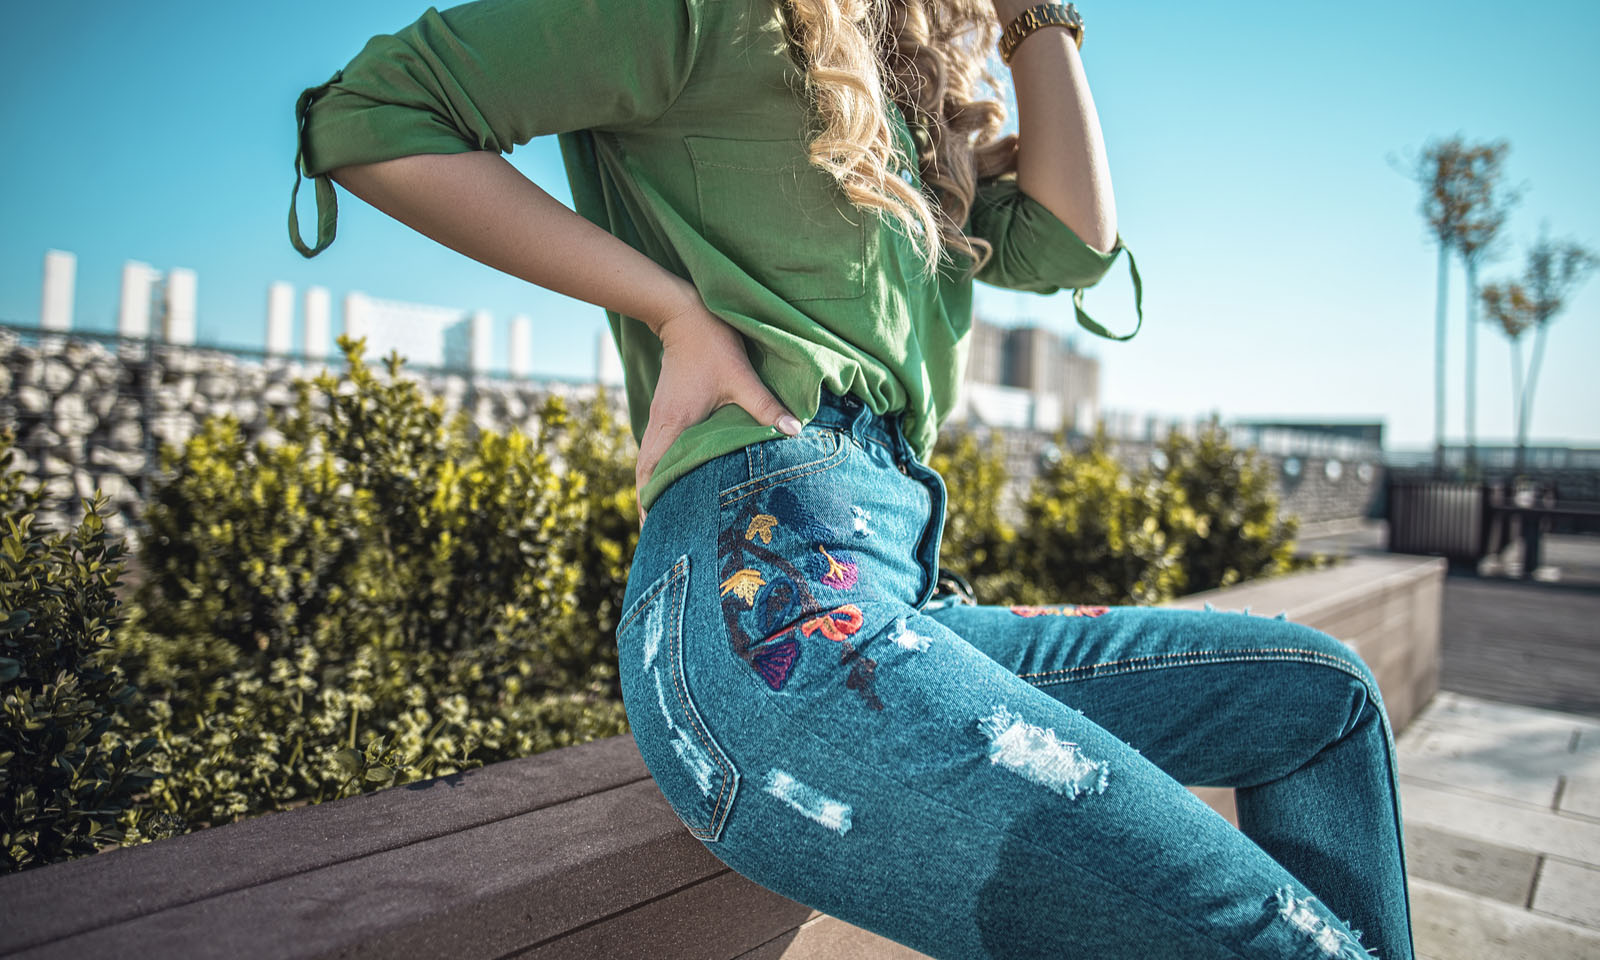 How the Mom Jeans Became a Street Style Sensation